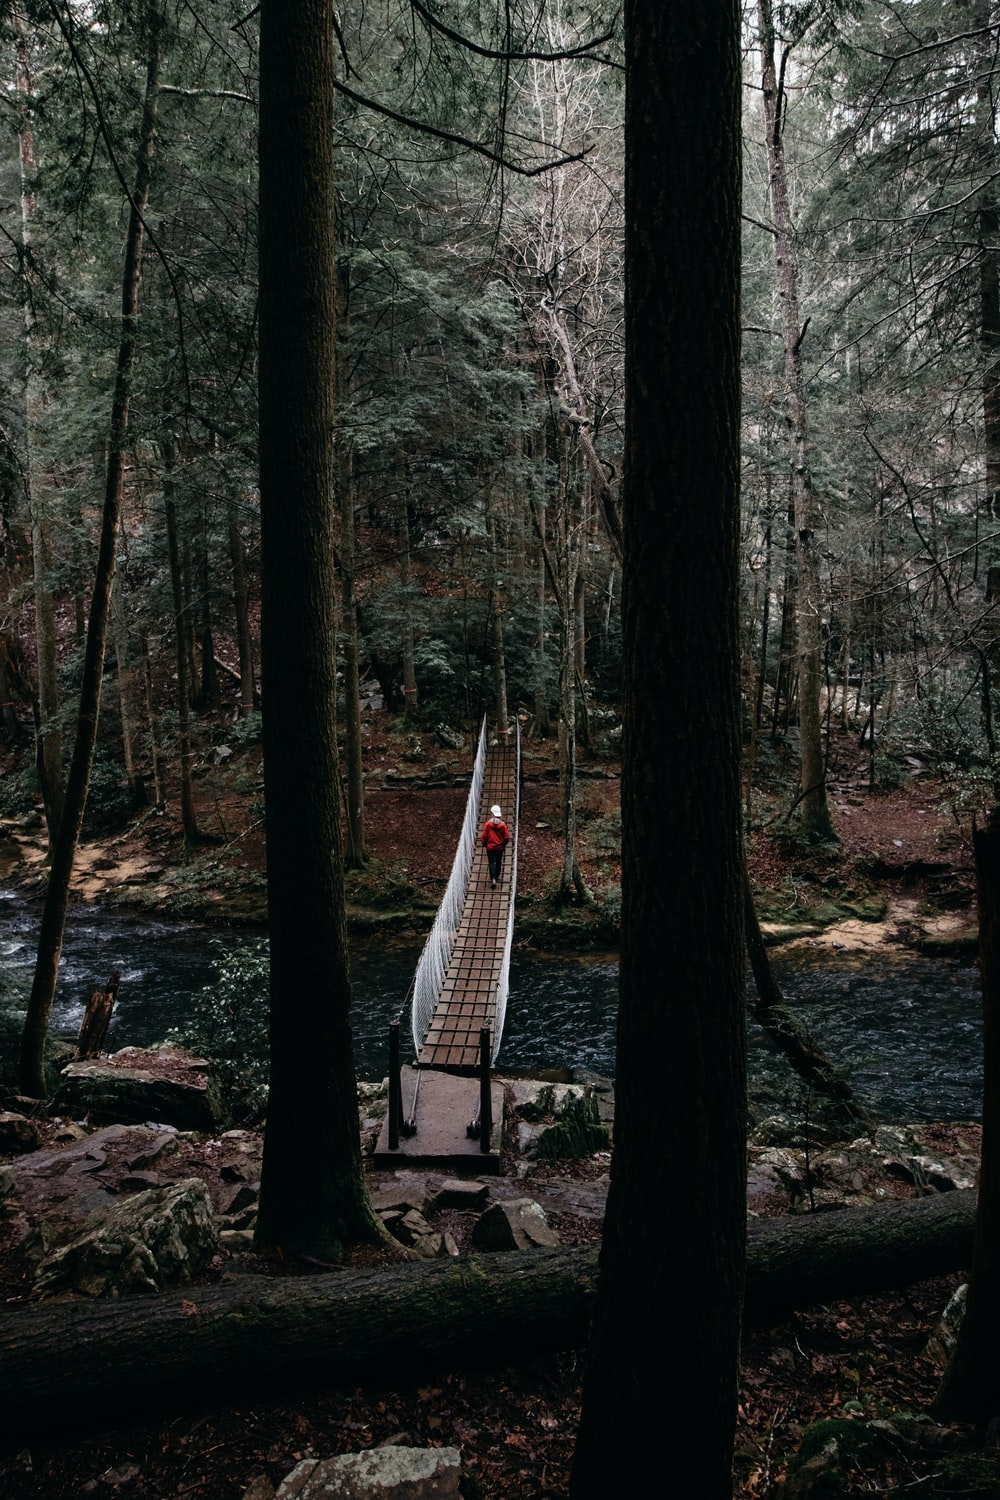 person walking on hanging bridge surround with trees